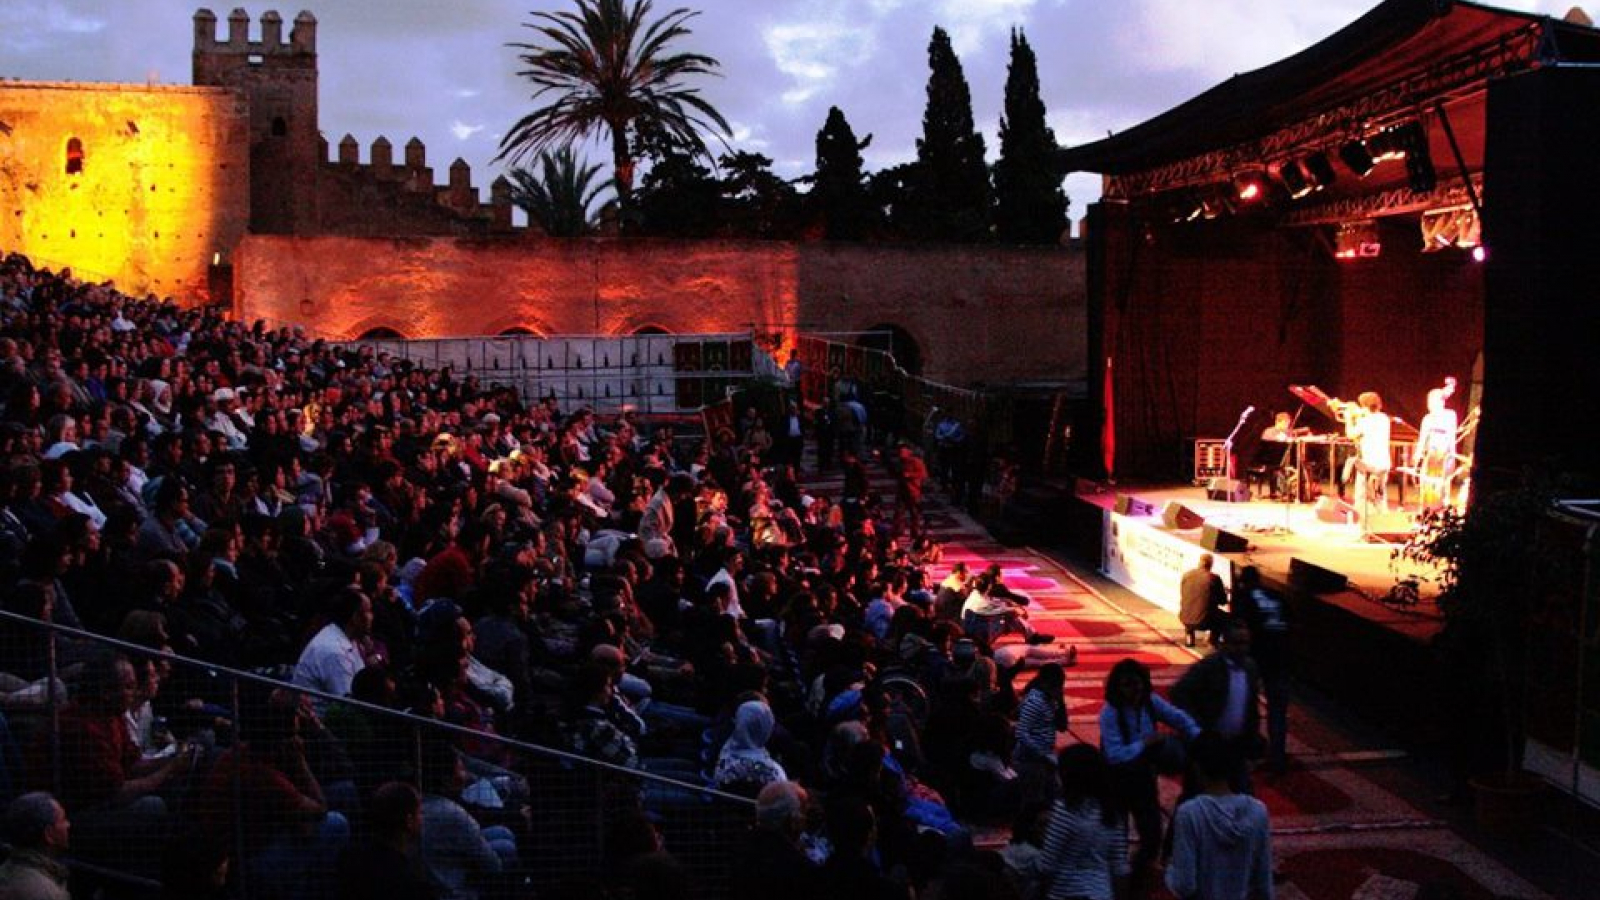 Chellah Jazz Festival from 25 to 29 September in Rabat, Morocco : Save the date !